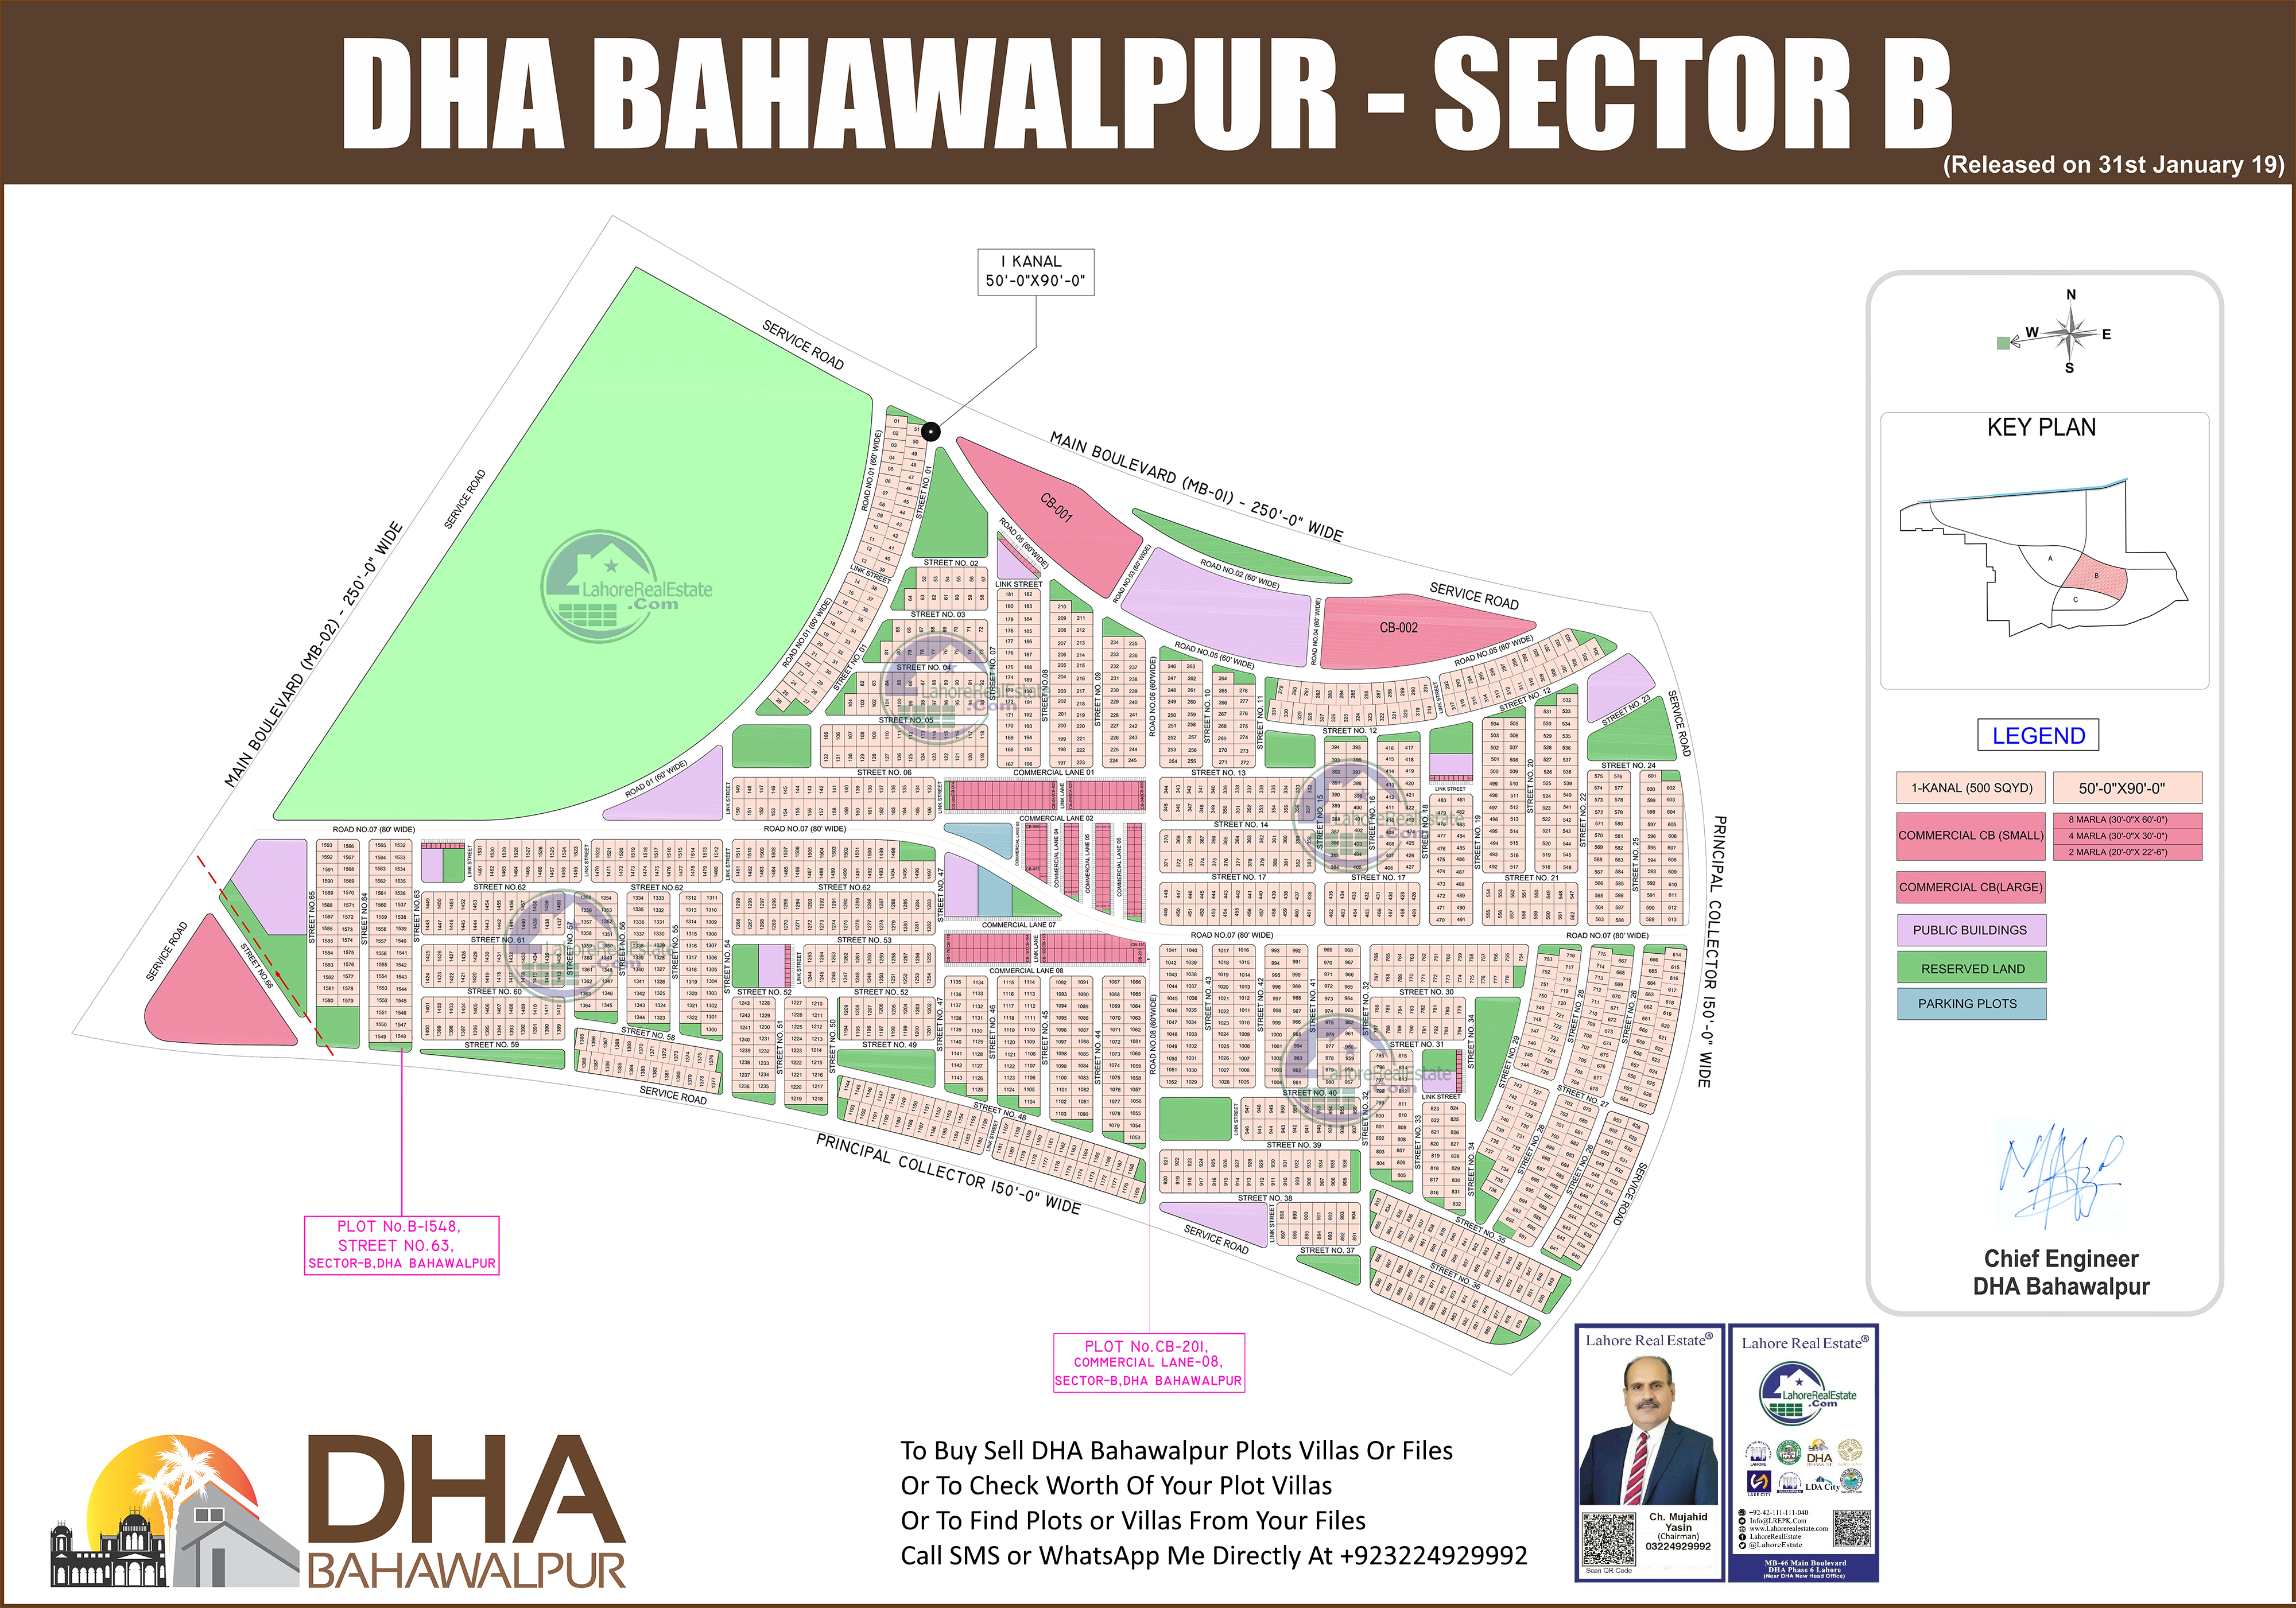 DHA Bahawalpur Ballot Results Maps Available On LRE LRE115739 on